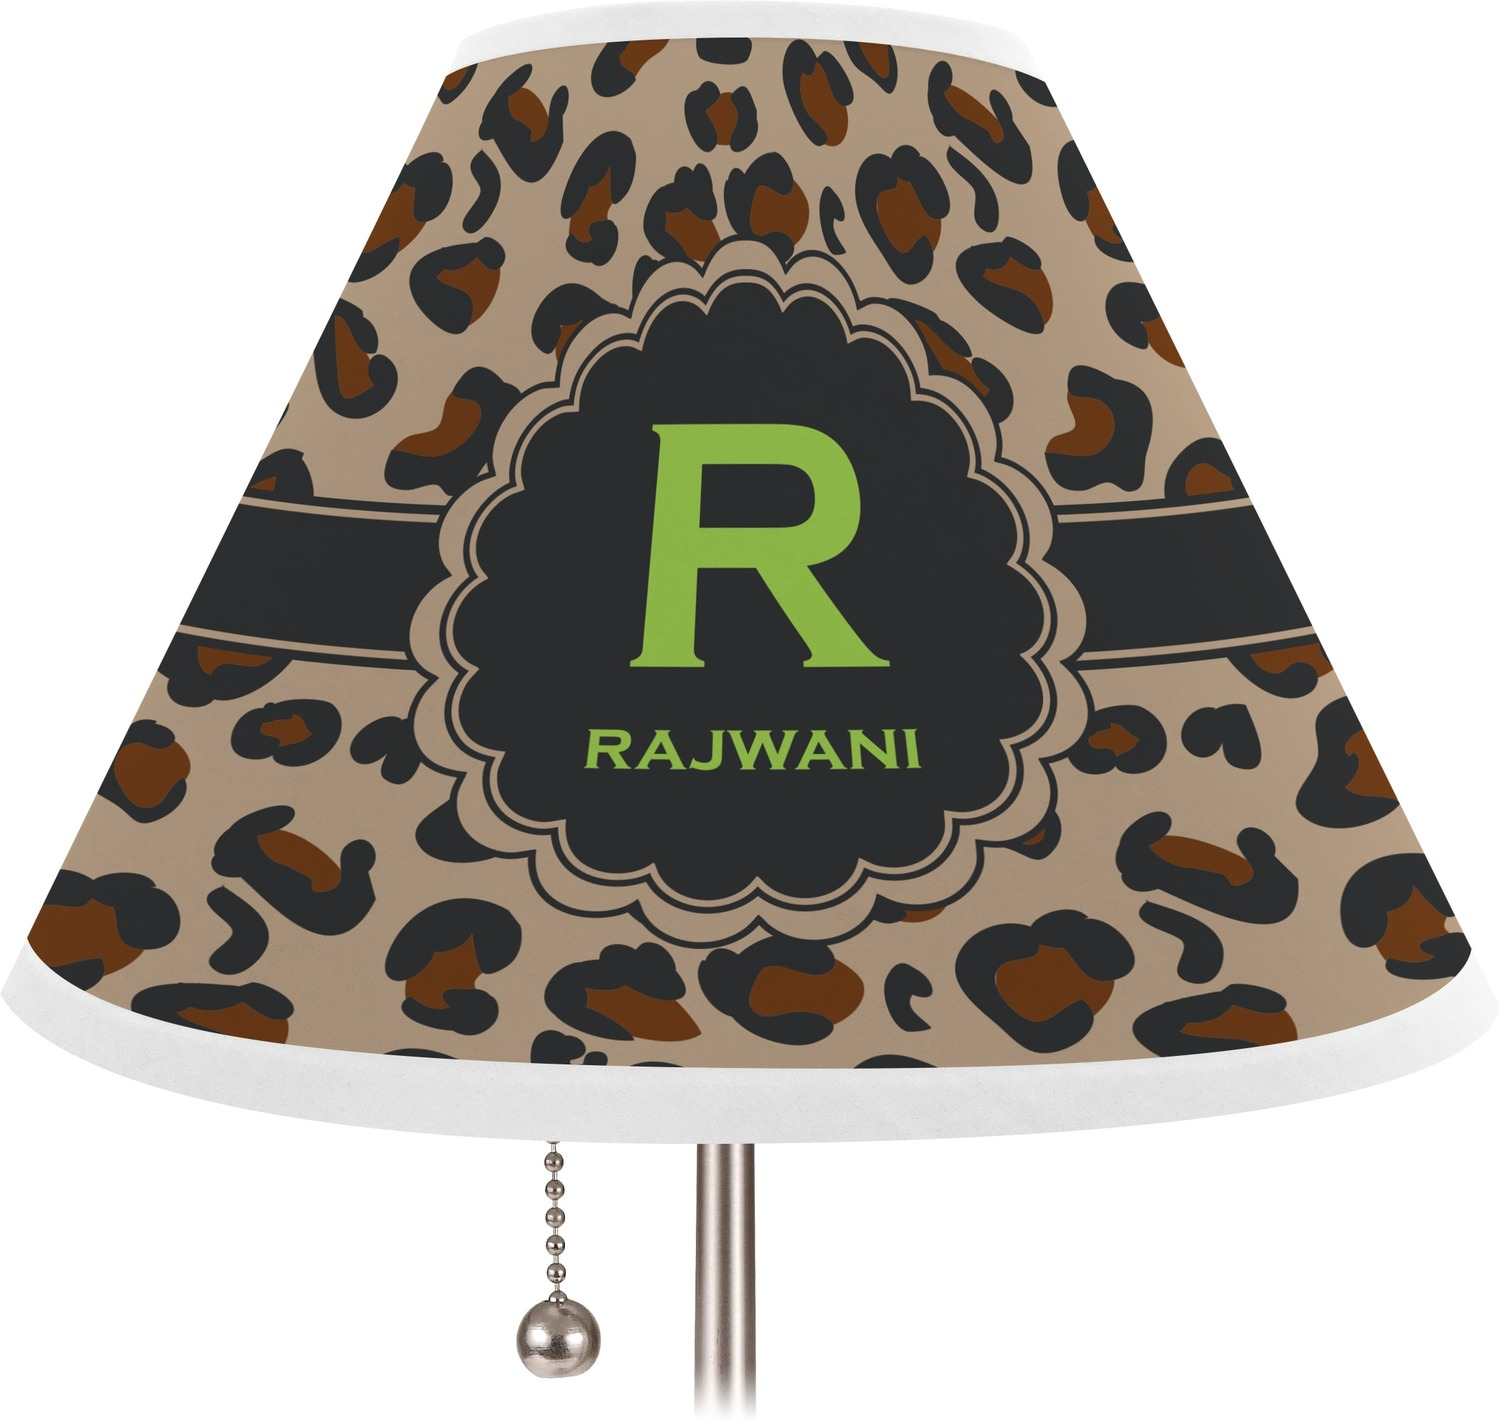 Granite leopard lamp shade large personalized you for Floor lamp with leopard shade